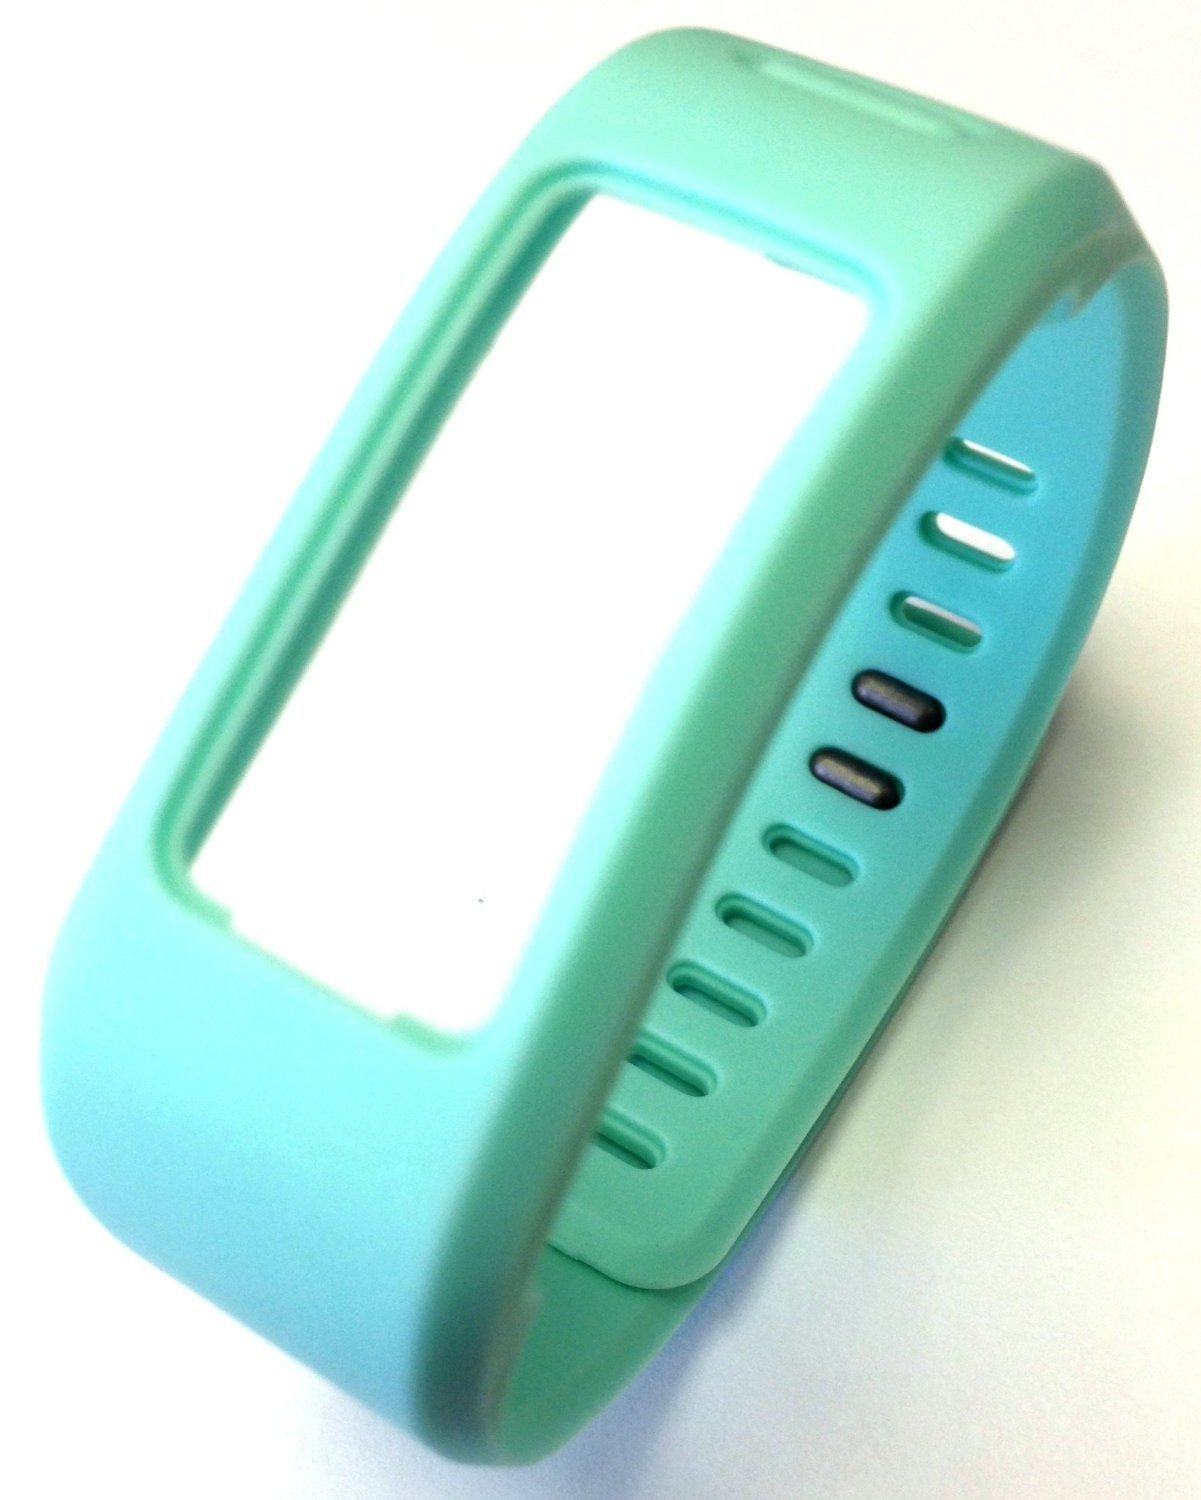 I-SMILE Band for Garmin Forerunner 225 Band, Colorful Replacement Wristband With Secure Clasps For Garmin Forerunner 225,Pin Removal Tools&Light Seal include(No tracker, Replacement Bands Only)